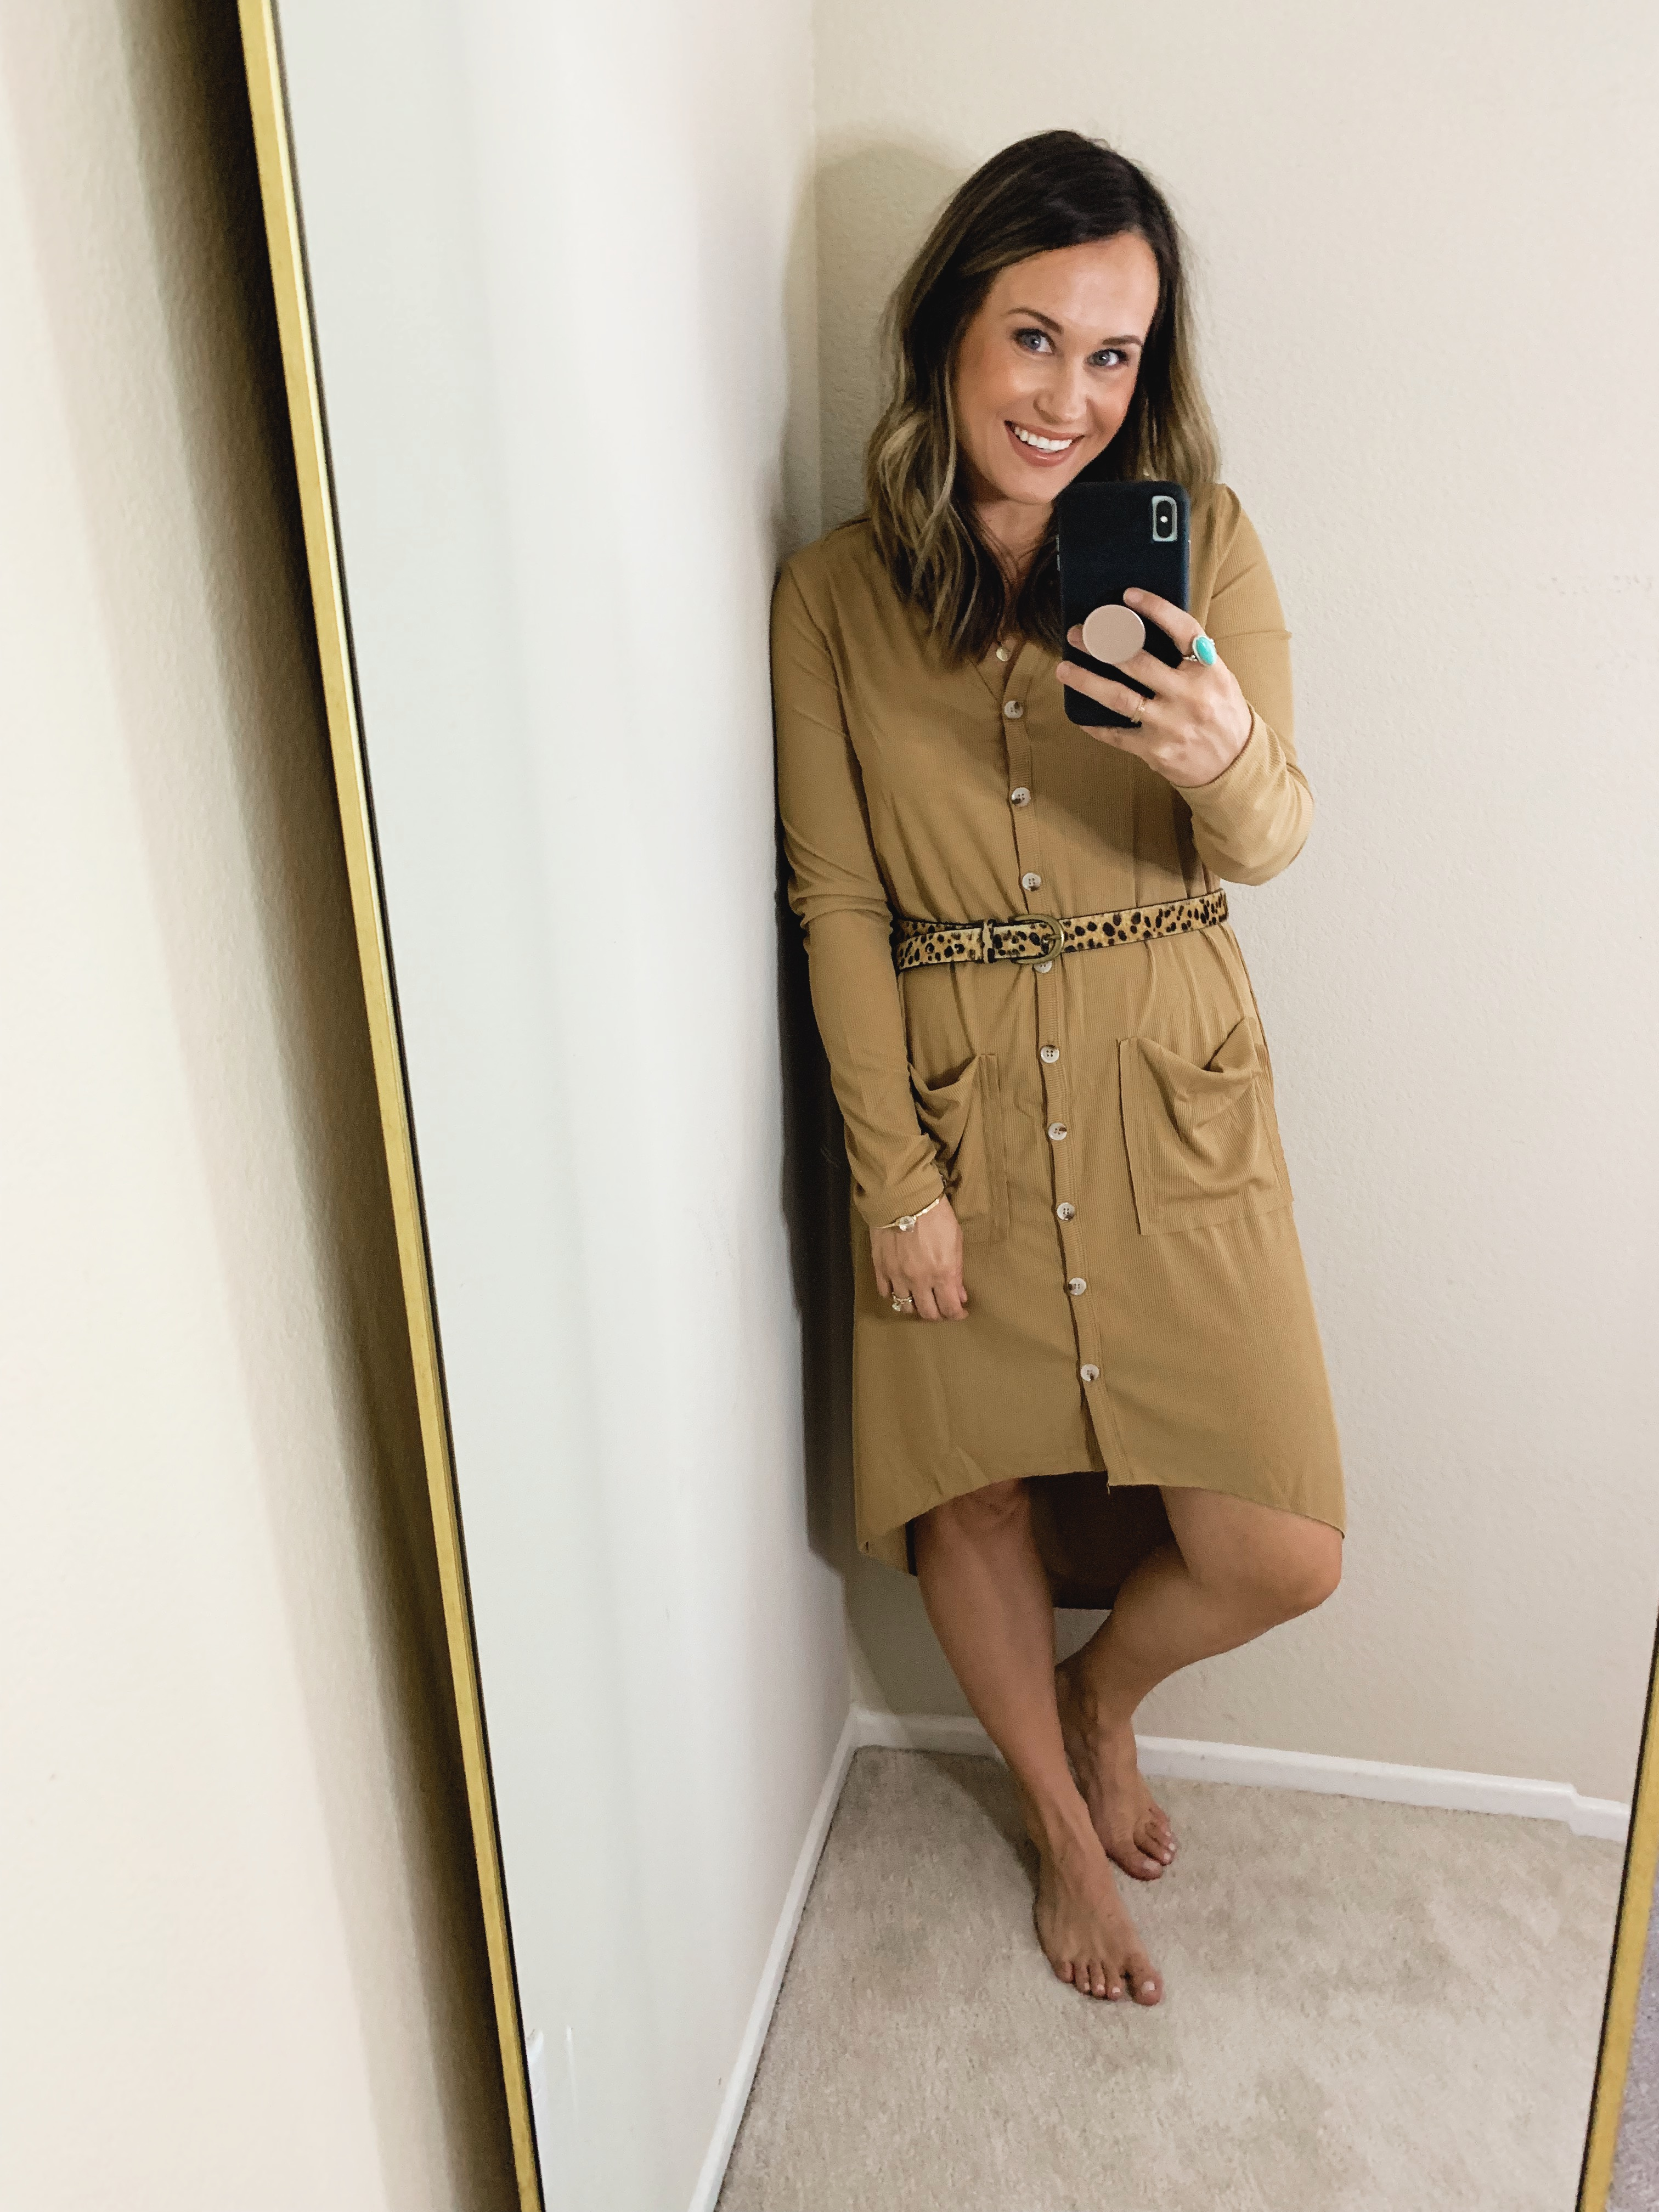 dress from amazon